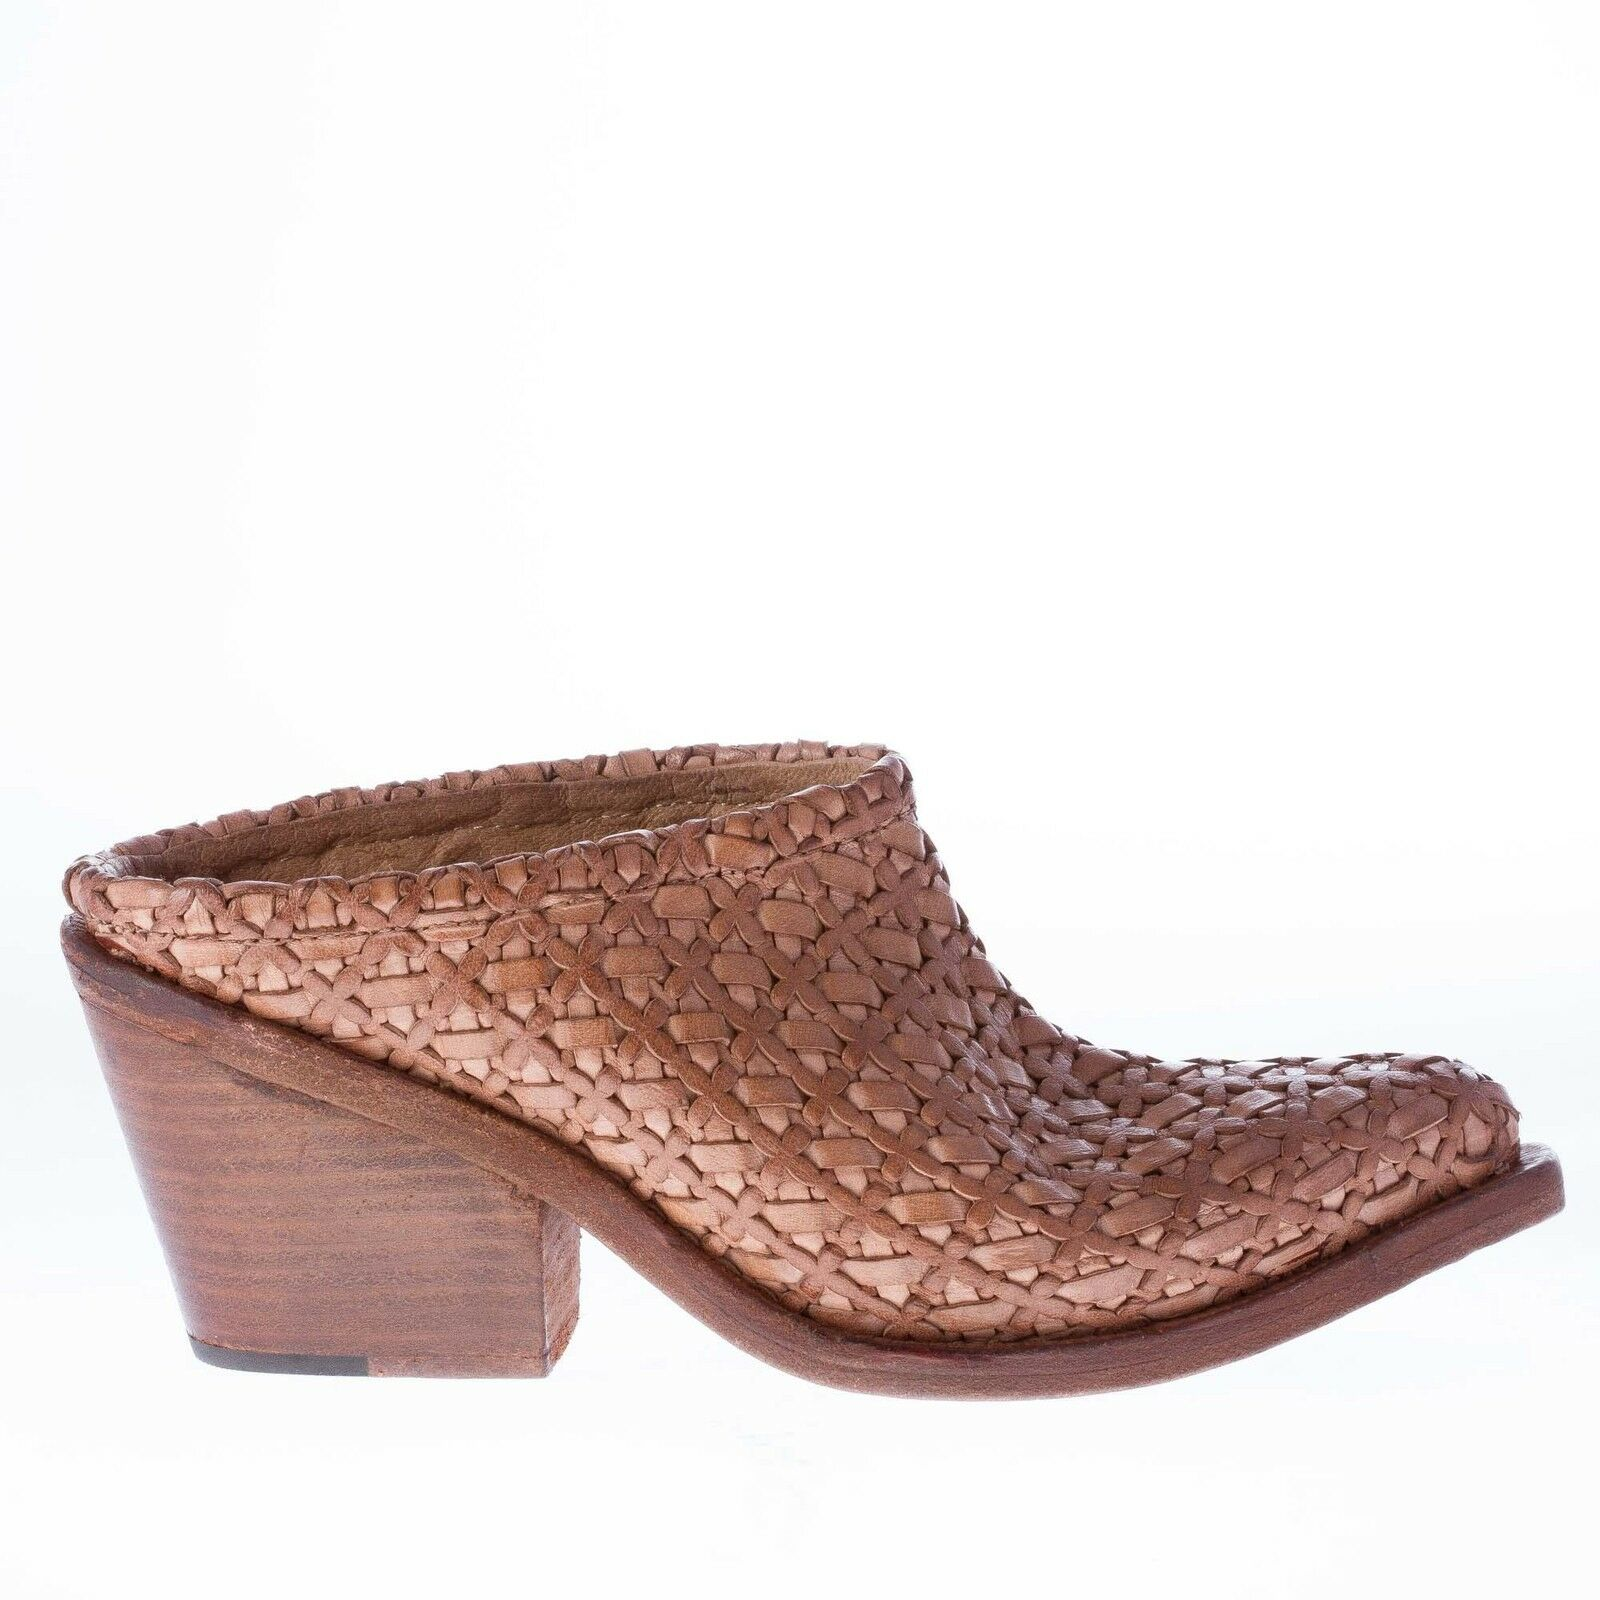 Nylo Womens shoes Women shoes Handcrafted Made in  Natural Leather Mule